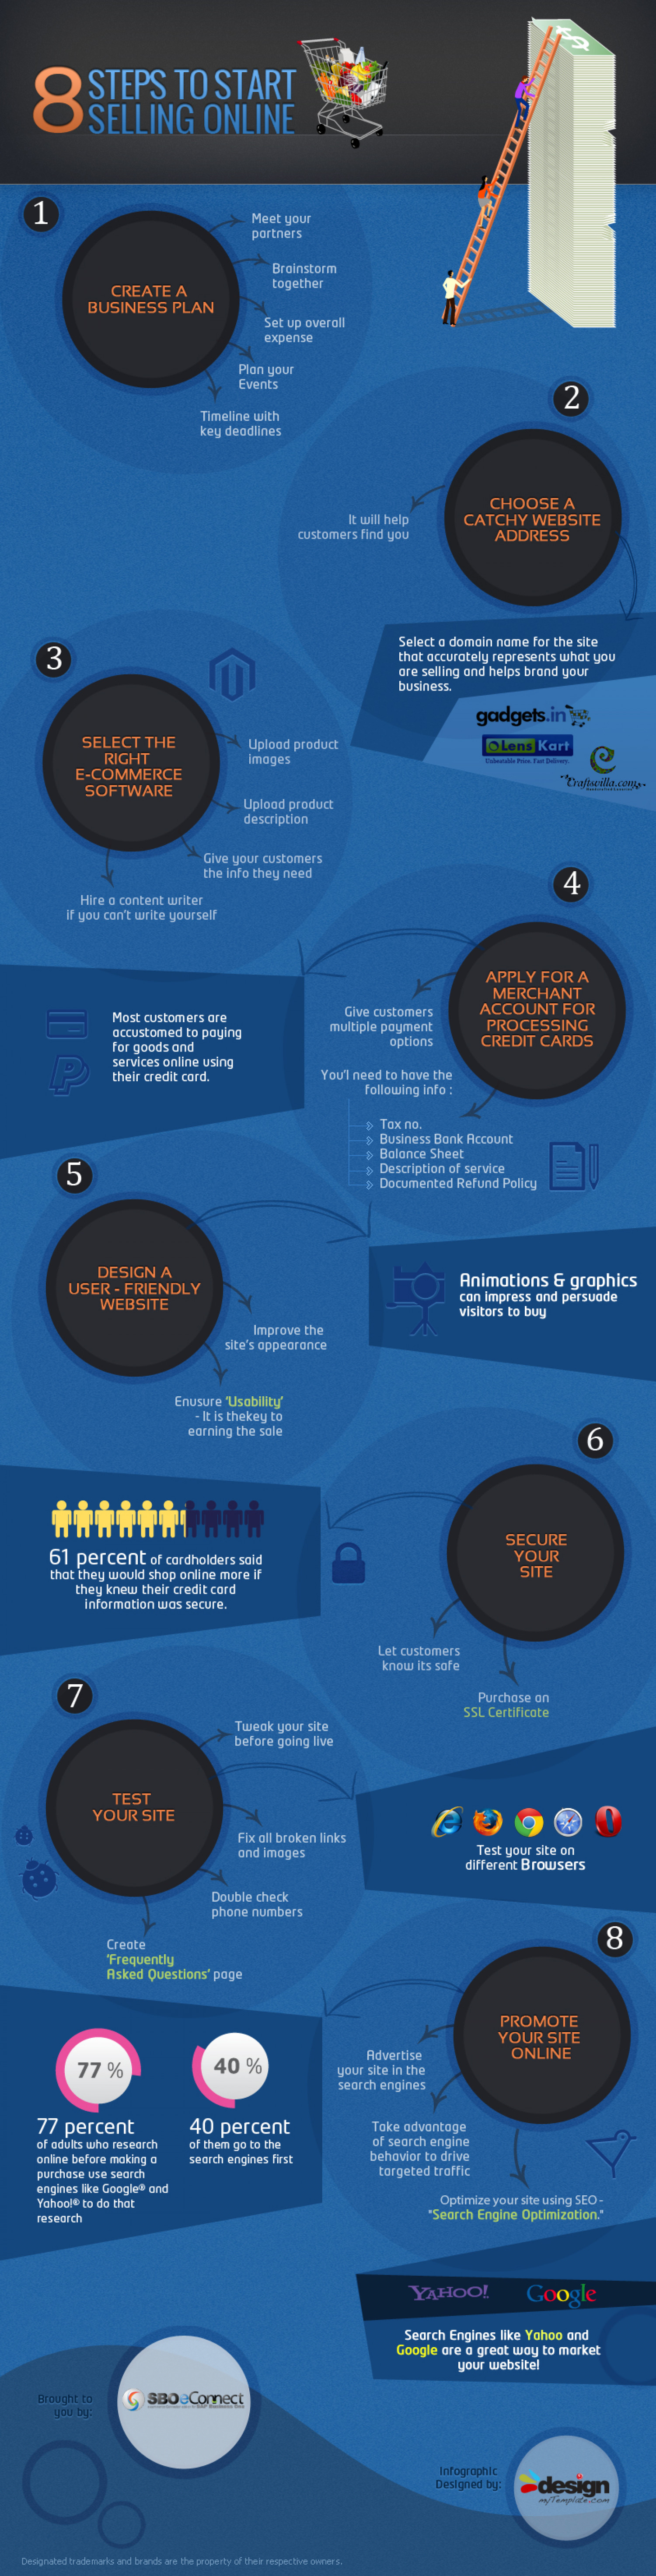 8 Steps To Start Selling Online Infographic